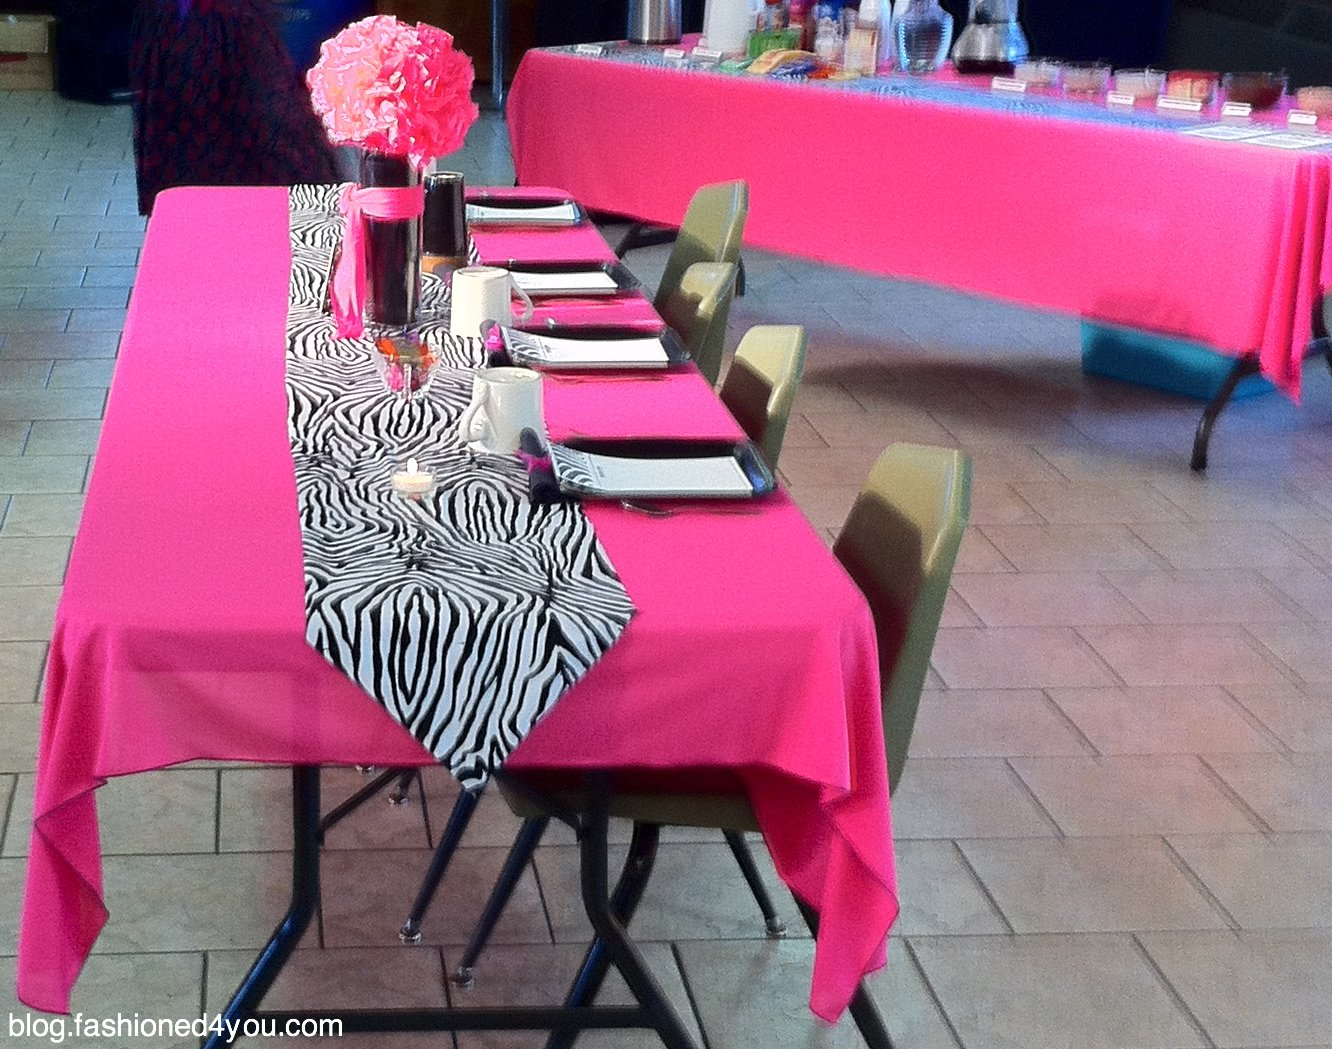 Merveilleux I Decided On A Bright Pink Gauze Like Fabric For The Tablecloths And A Zebra  Print Runner.